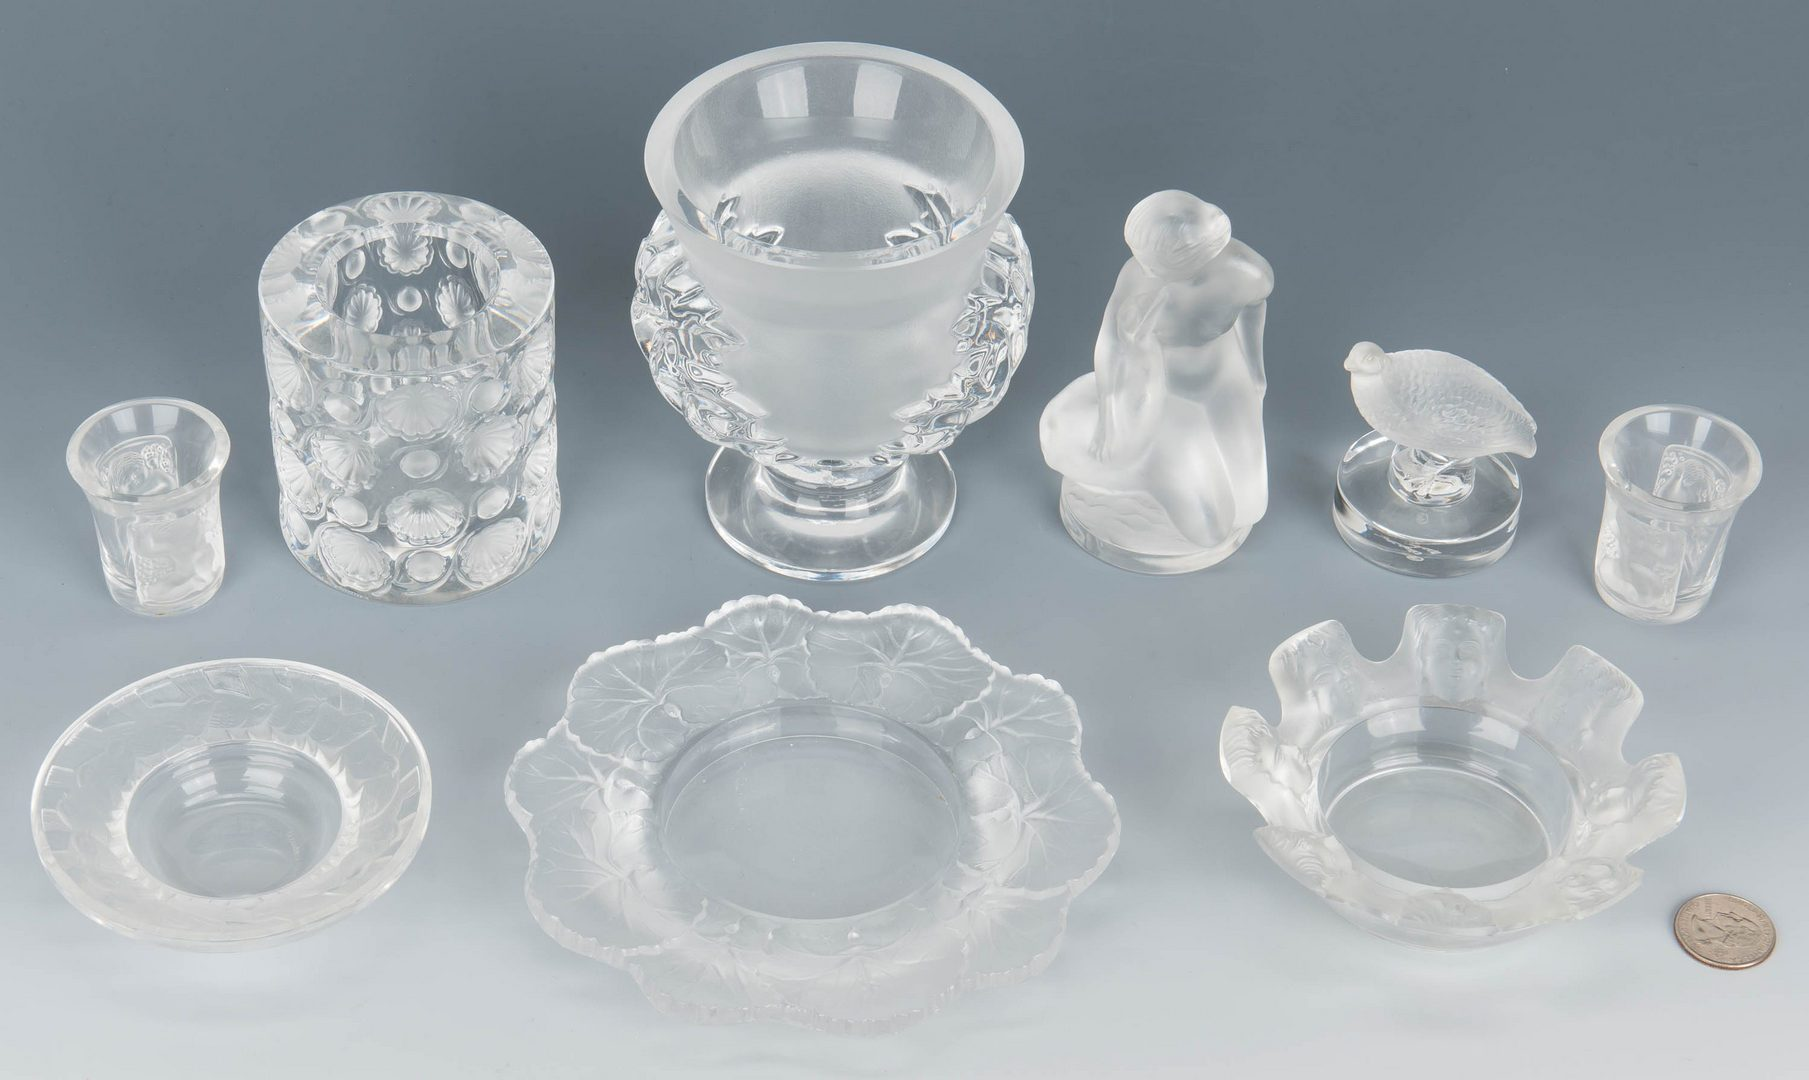 Lot 137: 9 Assorted Lalique Novelty Crystal Items